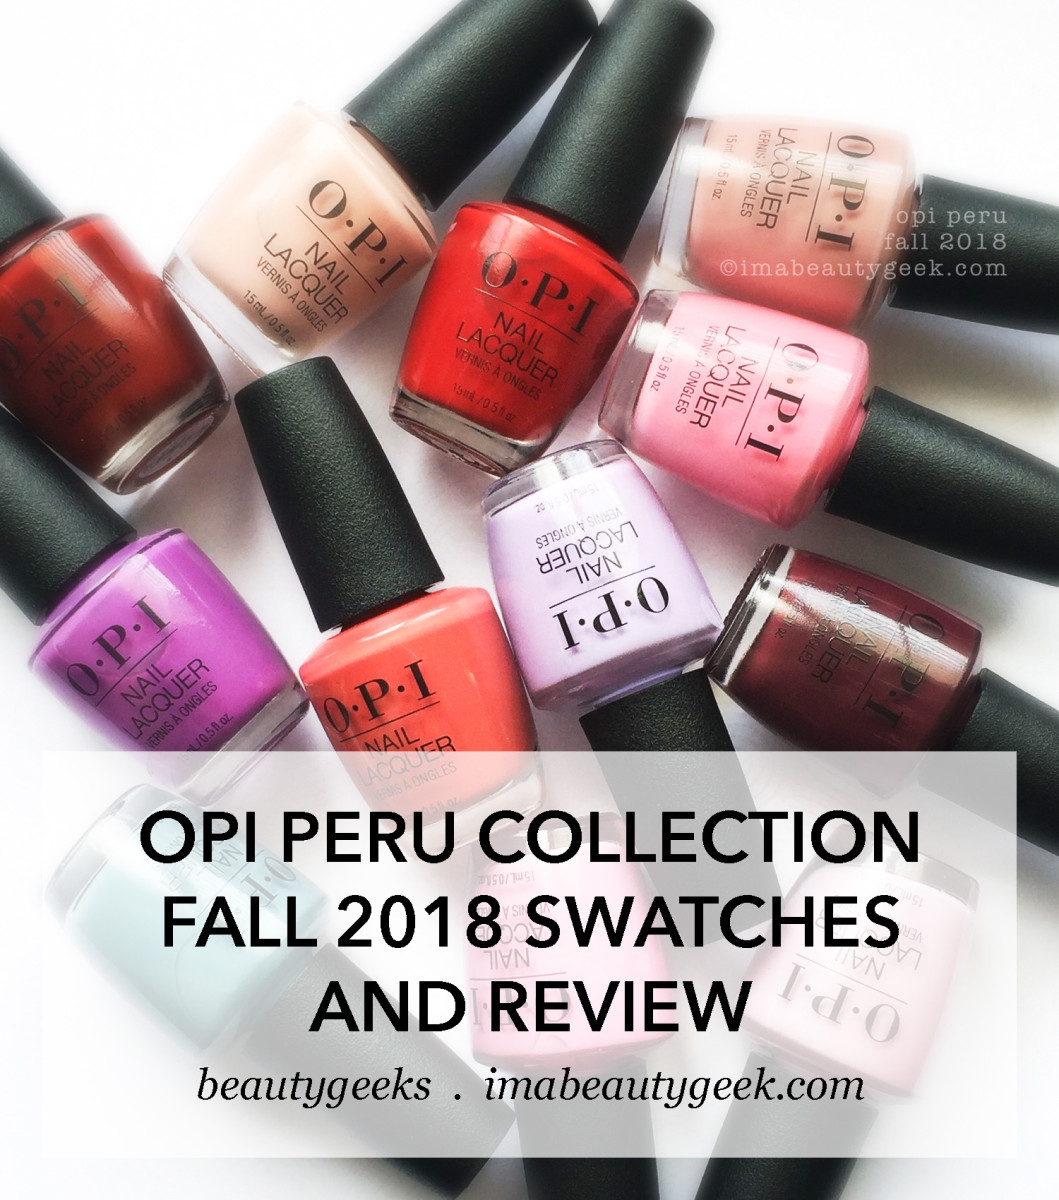 9ad8b038362 OPI Peru Collection Fall 2018 Swatches and Review-MANIGEEK-IMABEAUTYGEEK.COM